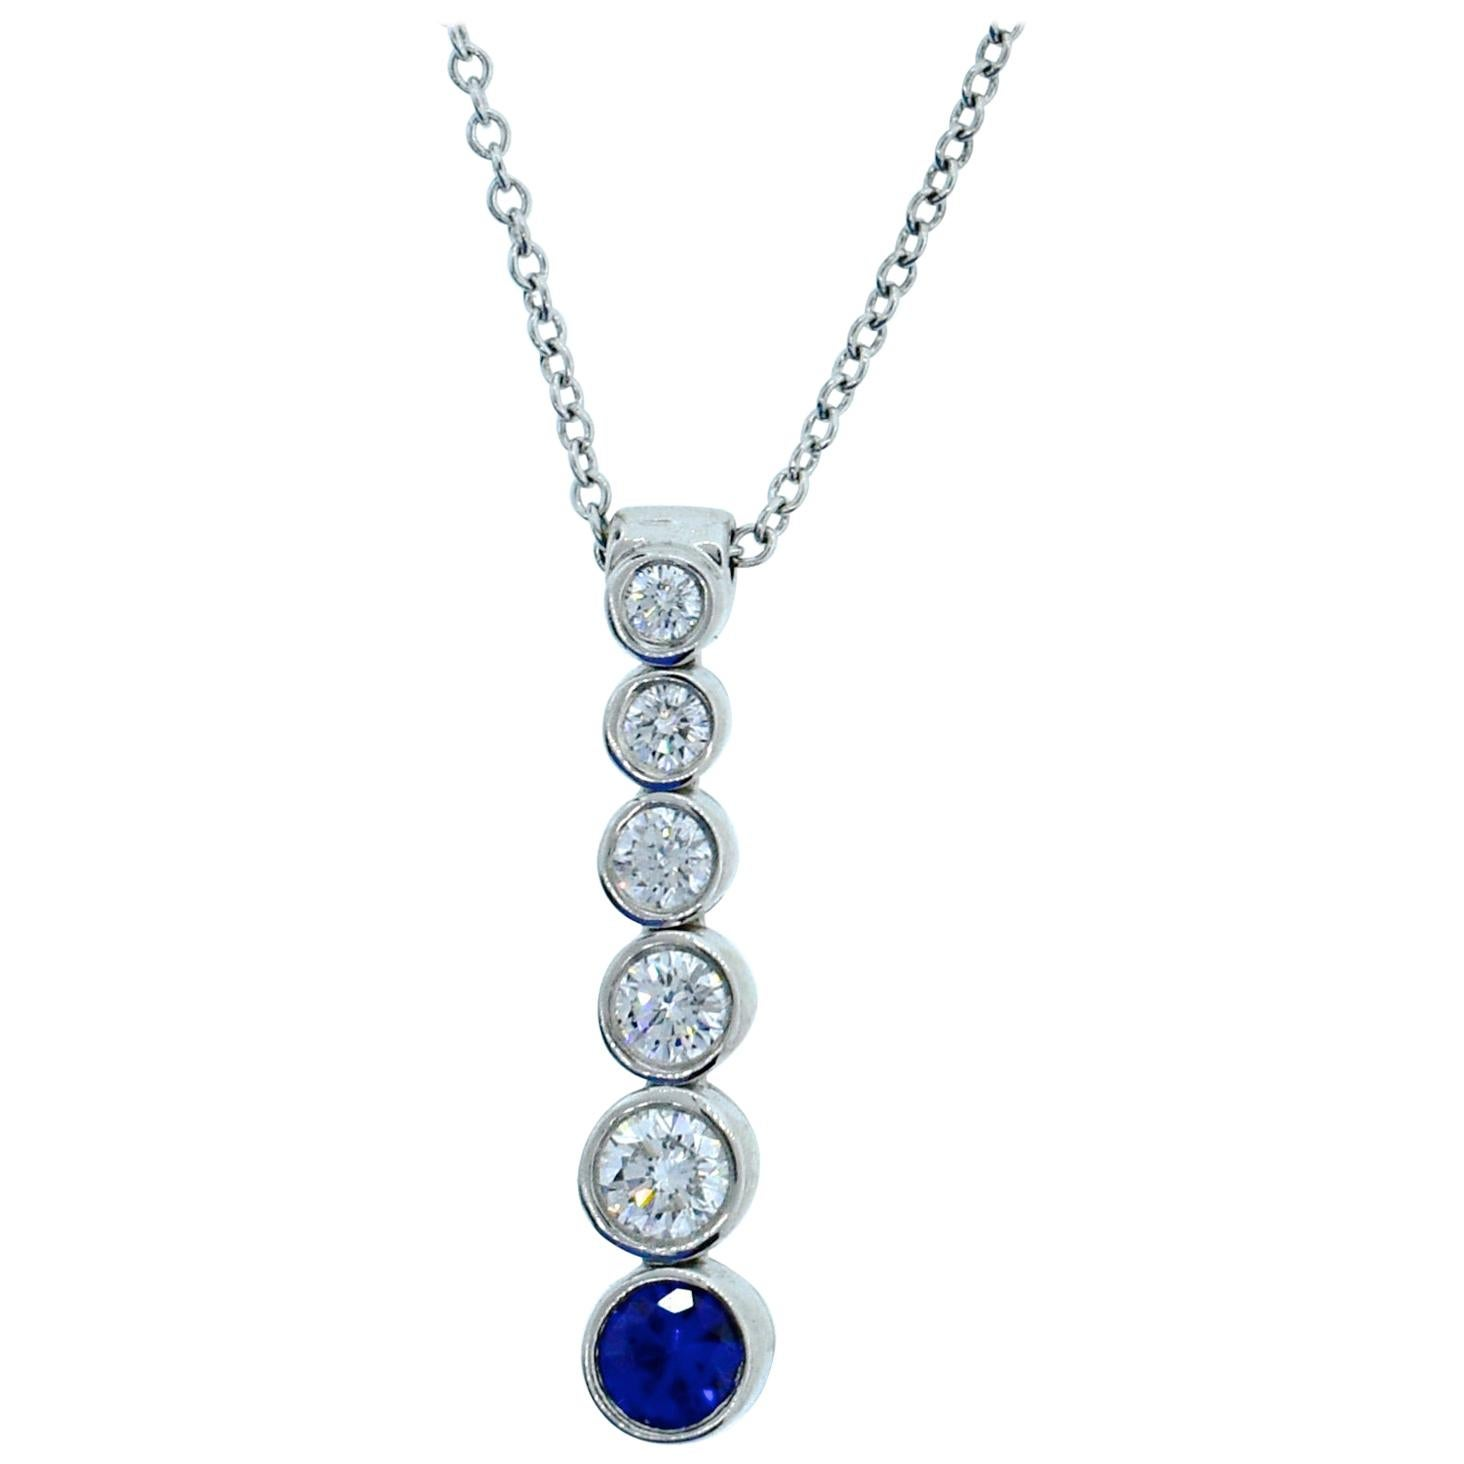 e8d9a52277b Diamond, Vintage and Antique Necklaces - 21,091 For Sale at 1stdibs